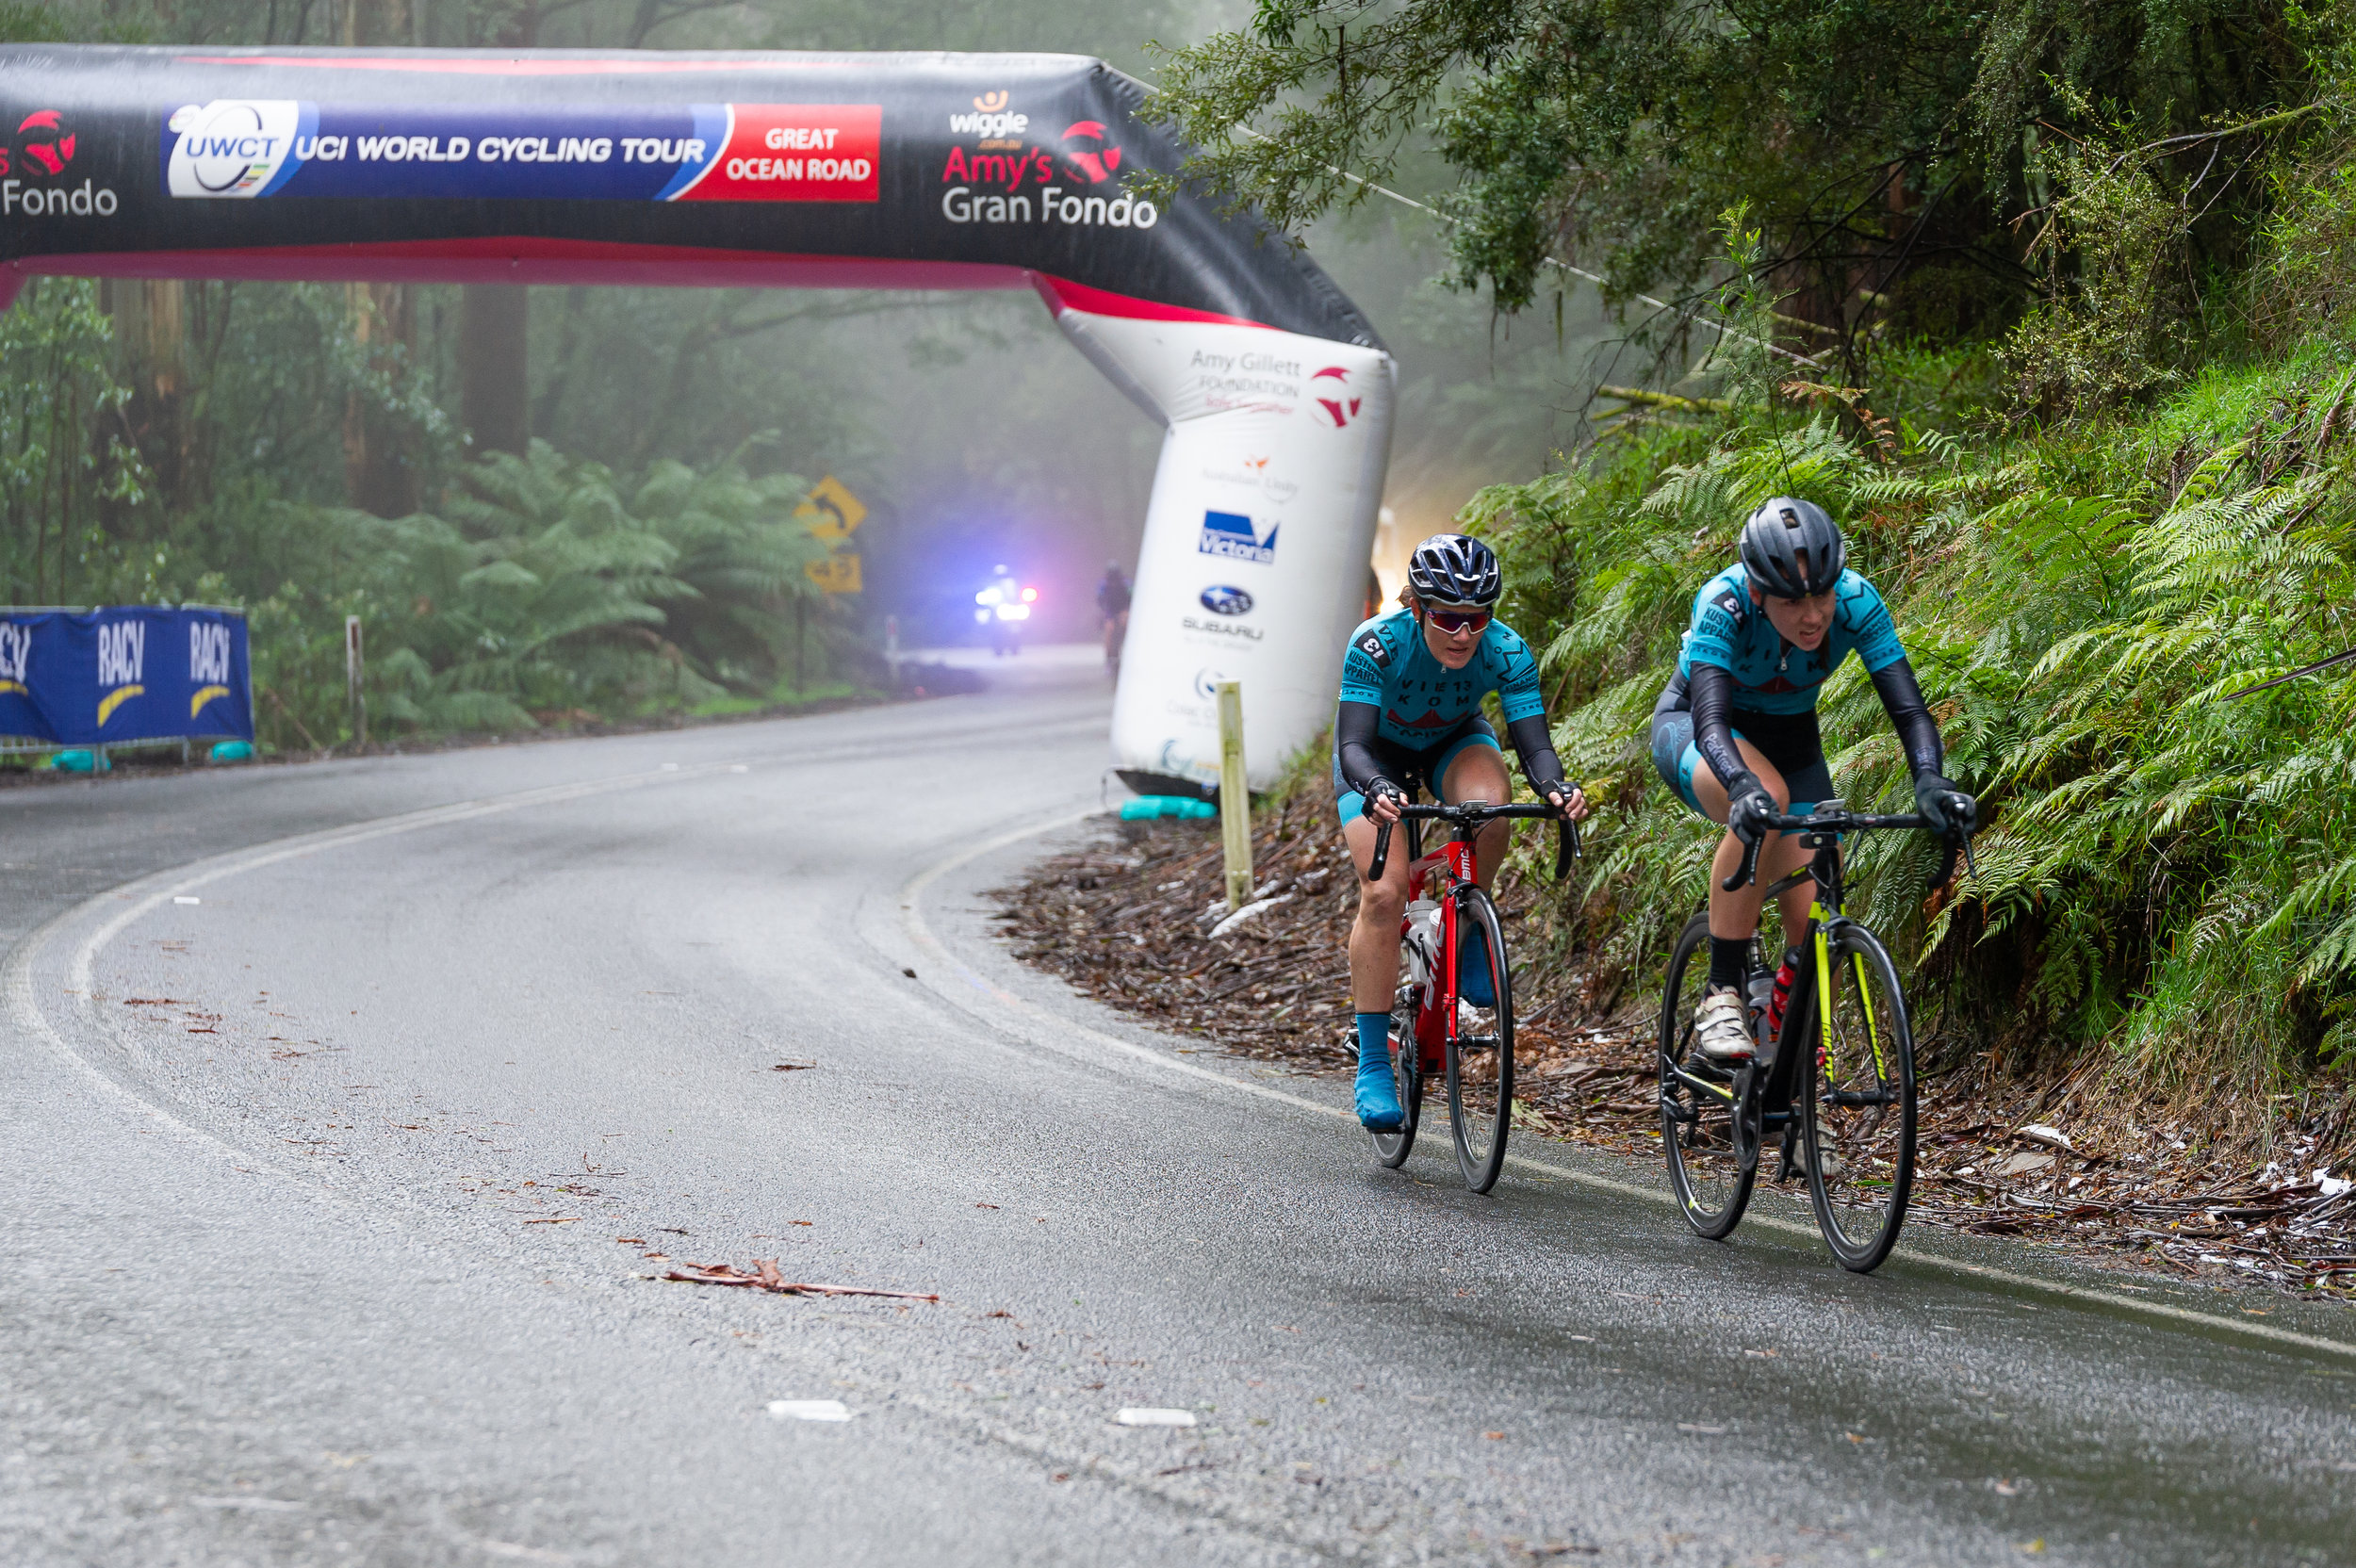 Bridget and Kirsty climb together over the second QOM. Photo credit: Photos by Ernesto.